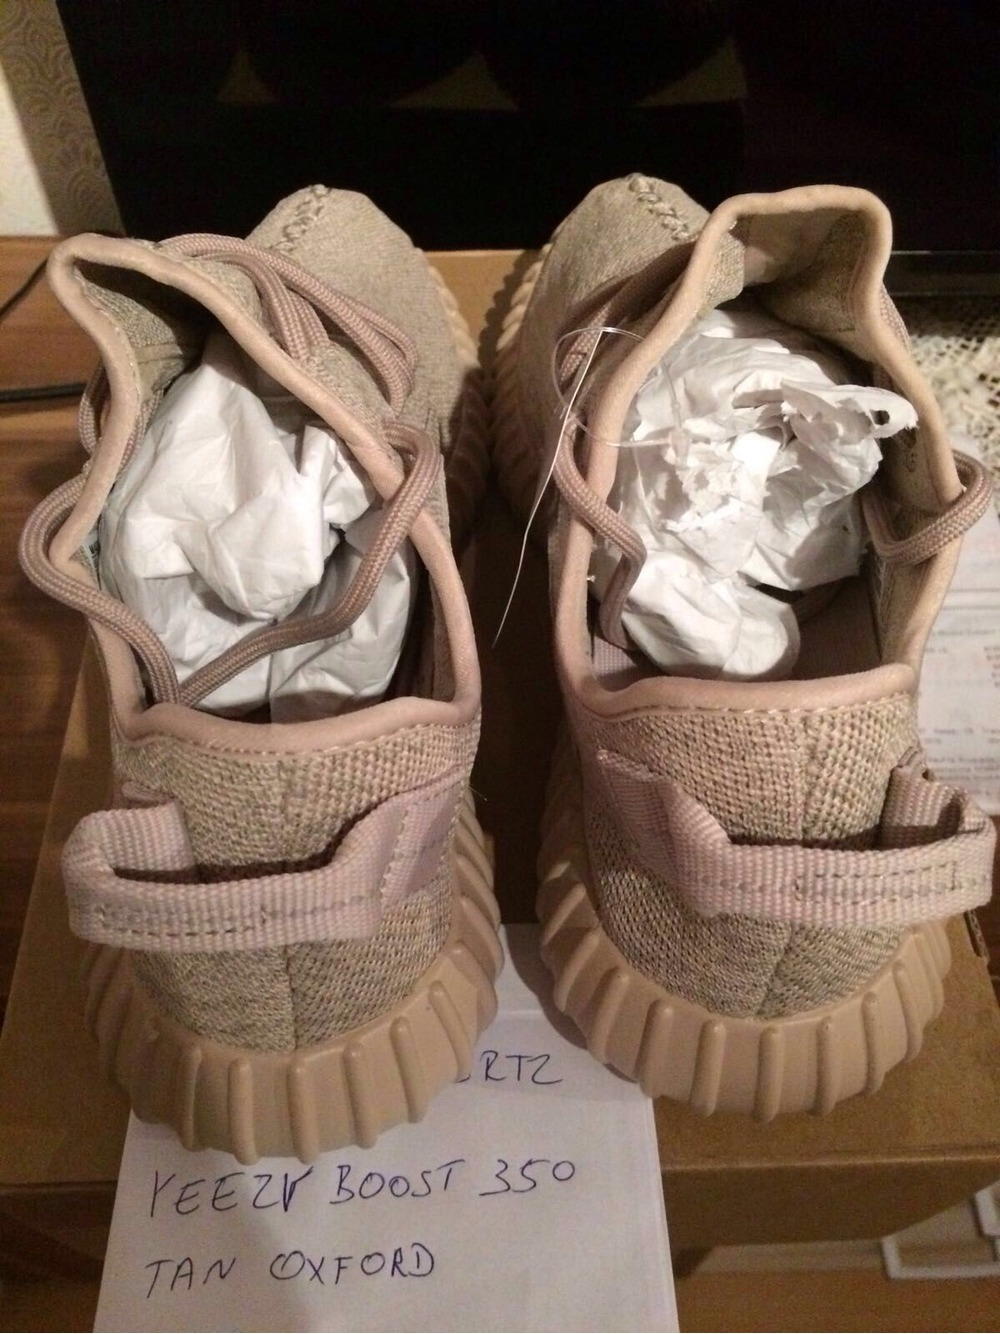 Cheap Yeezy 350 Oxford Tan Sale 2017